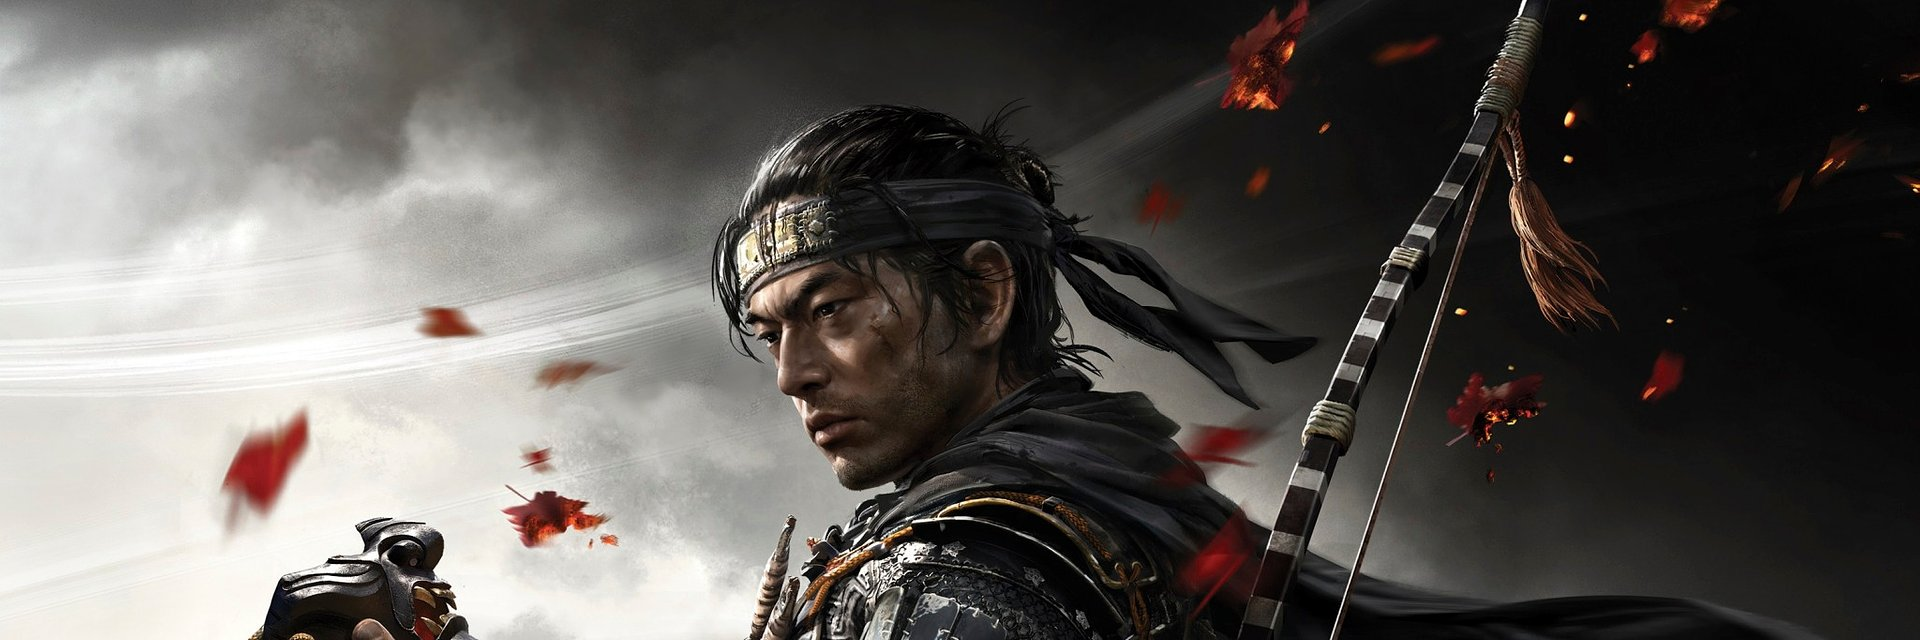 "Prezentujemy album ""Ghost of Tsushima (Music from the Video Game)"""